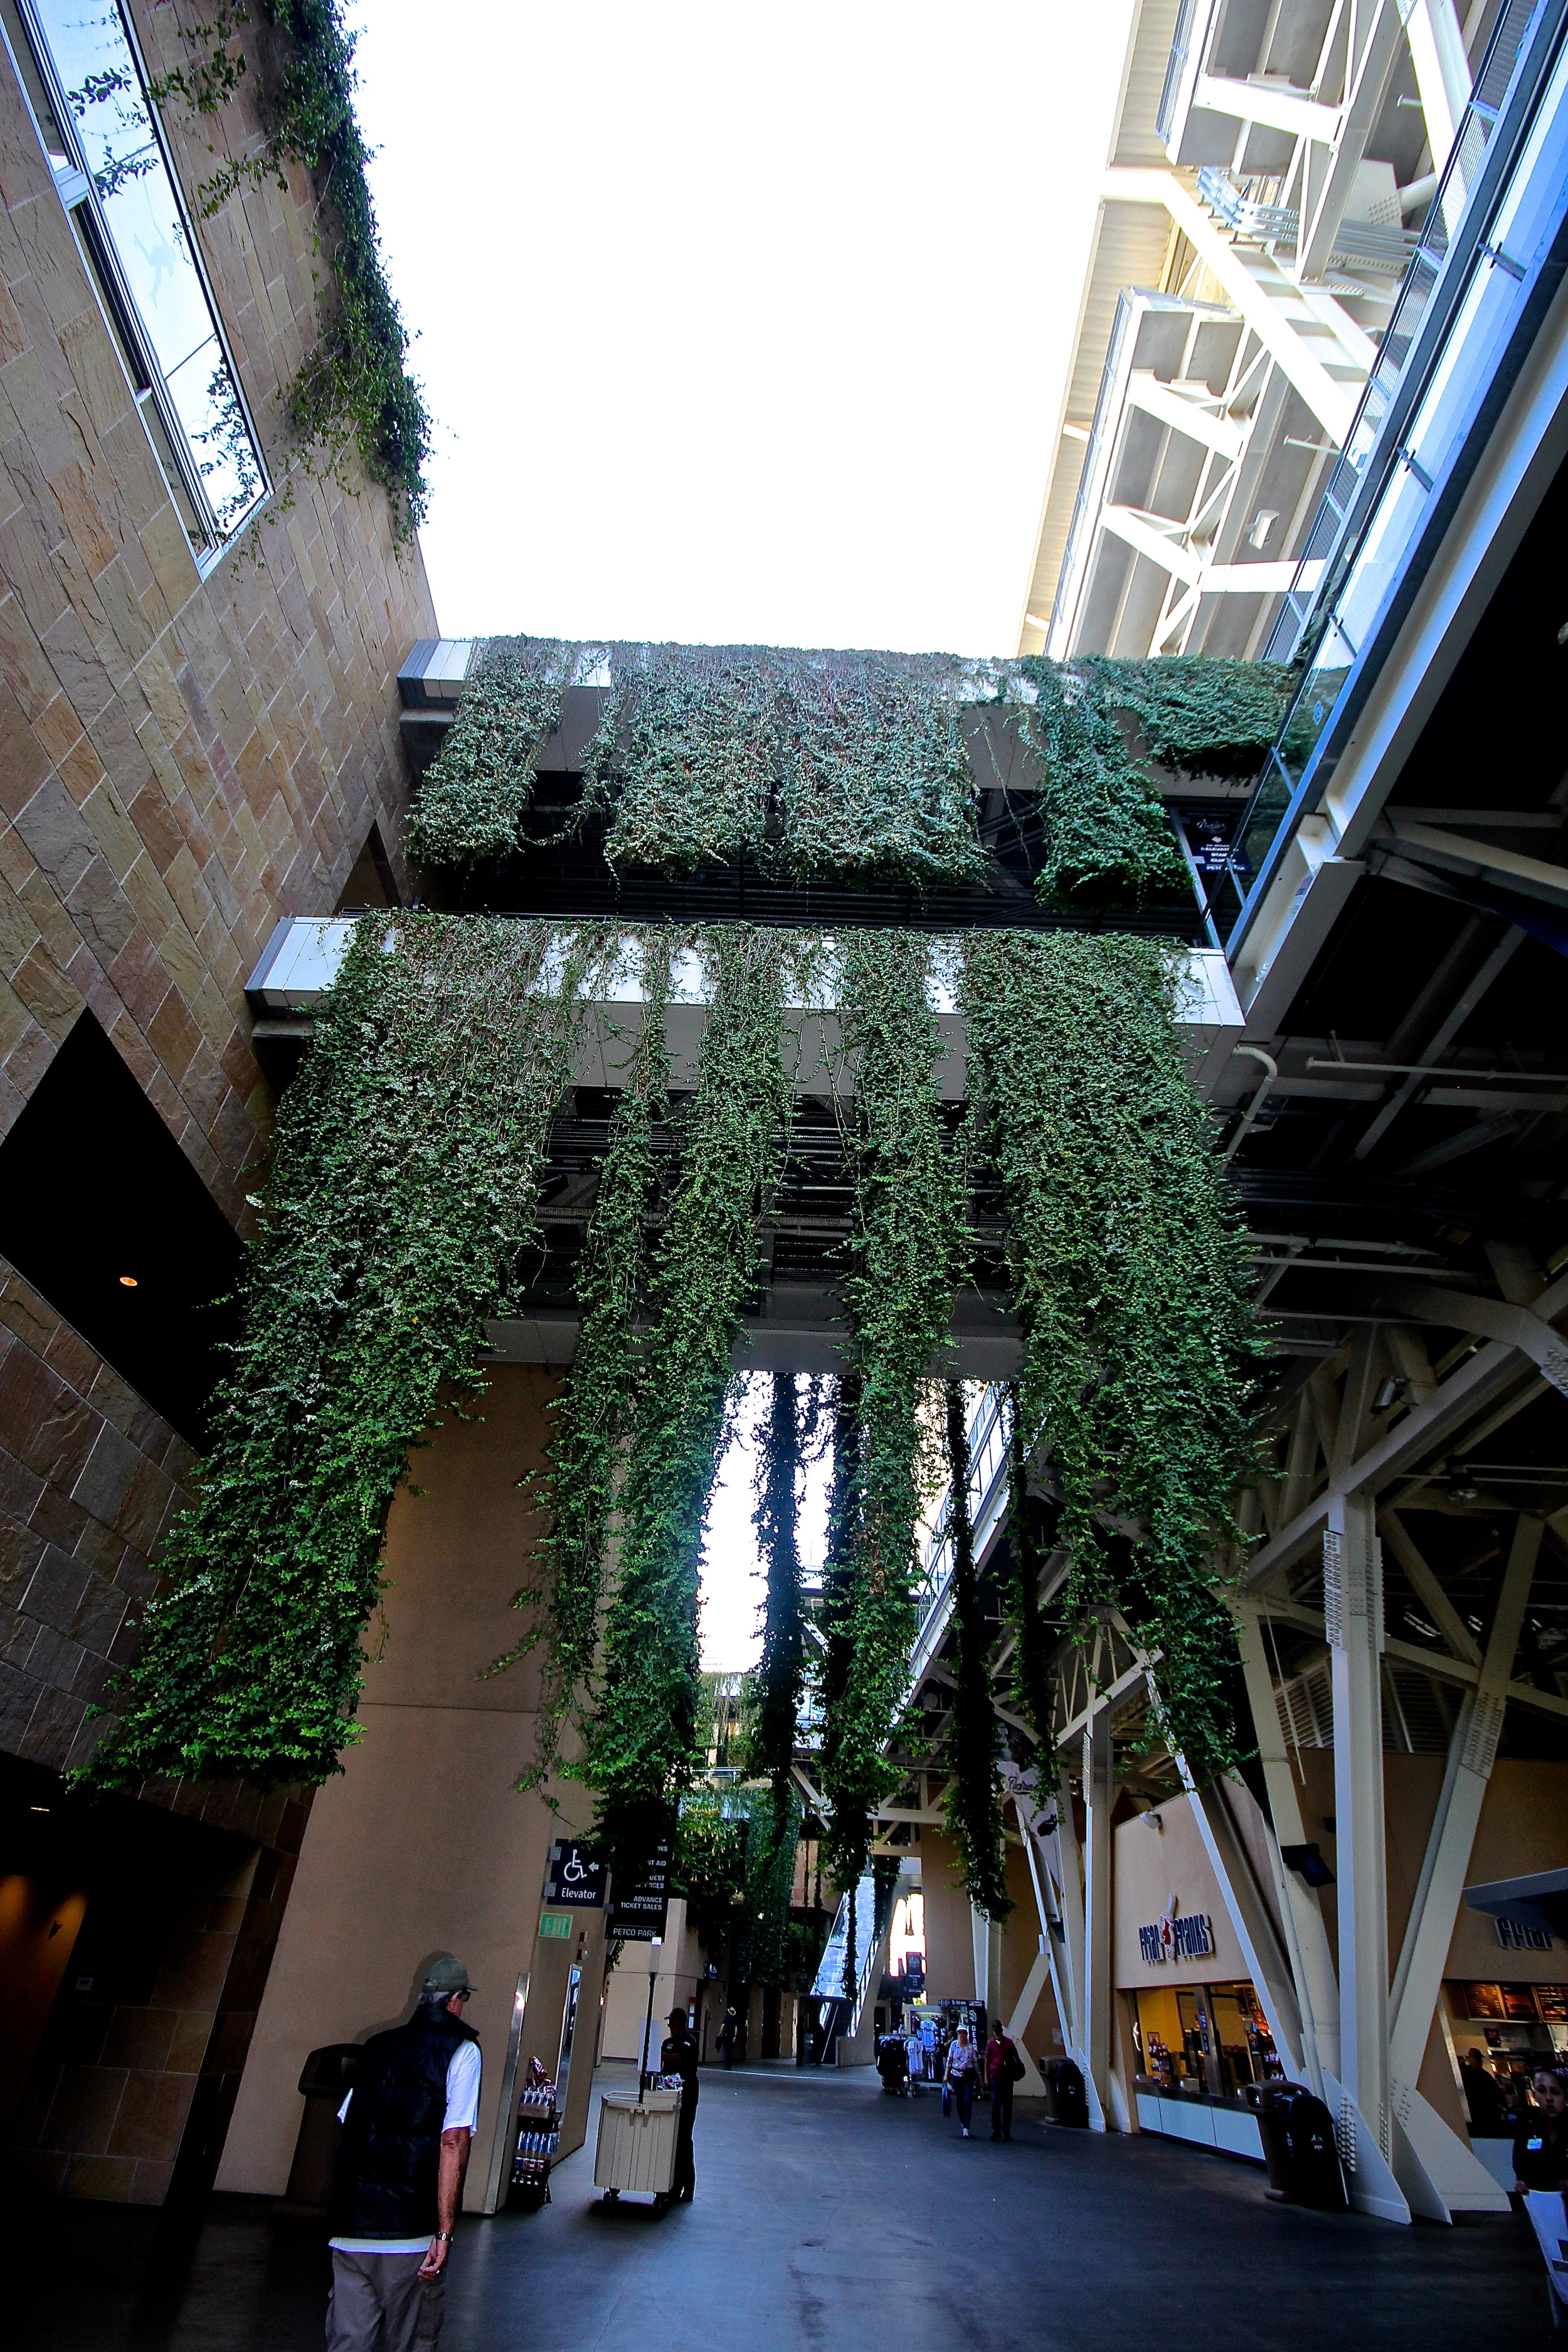 Vegetation on the concourse